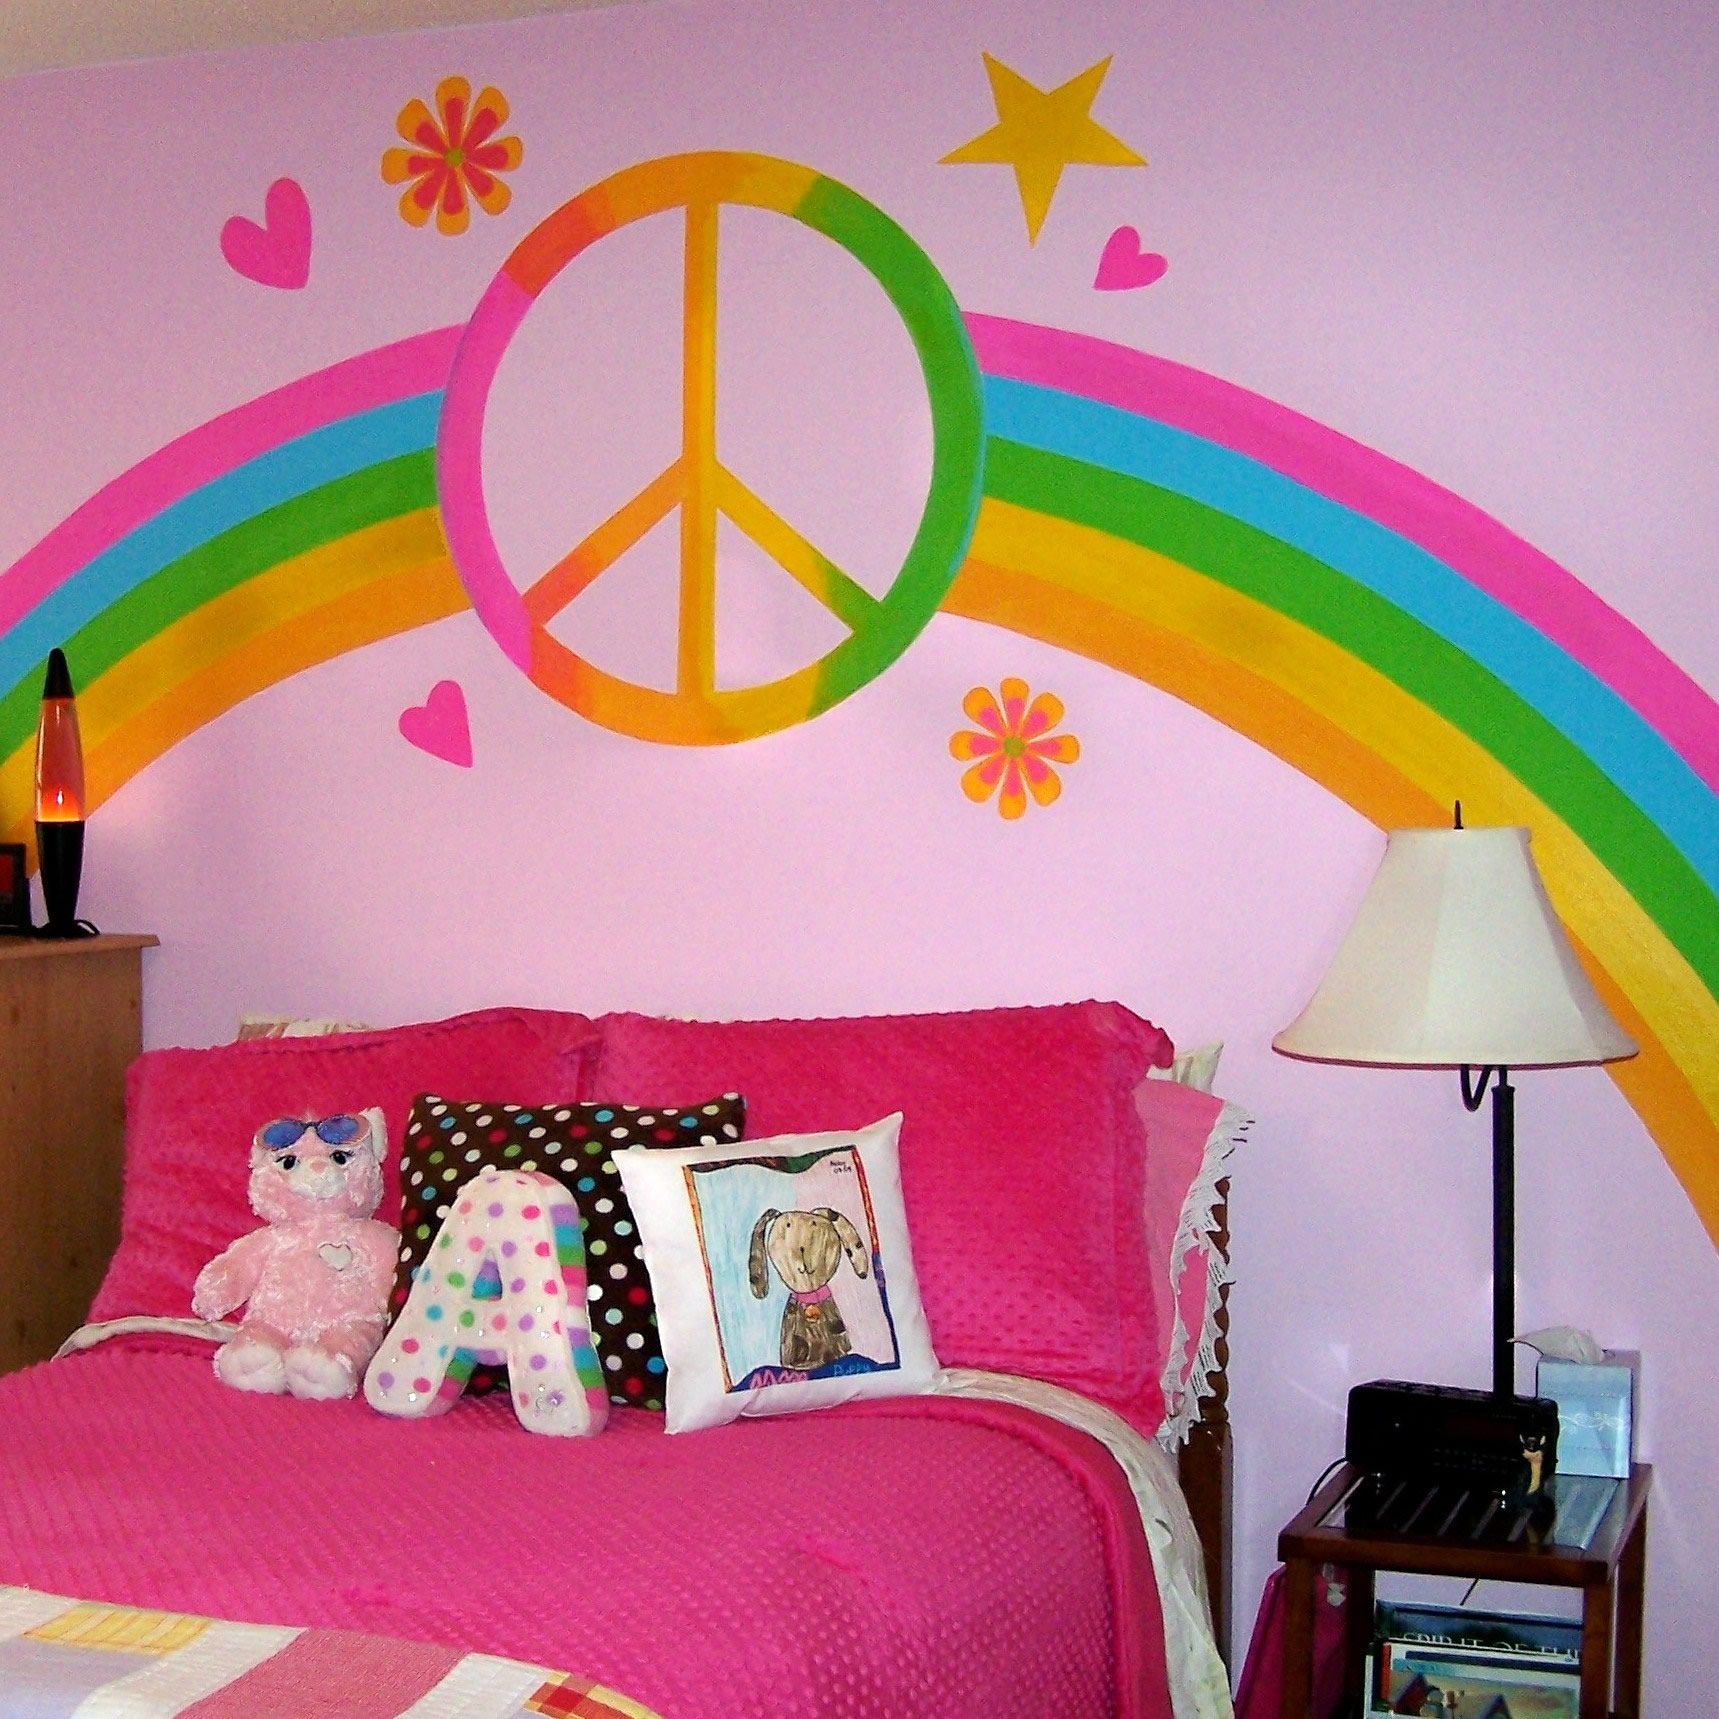 Plexi rainbow in this adorable rainbow-themed room. Photo and rainbow  created by